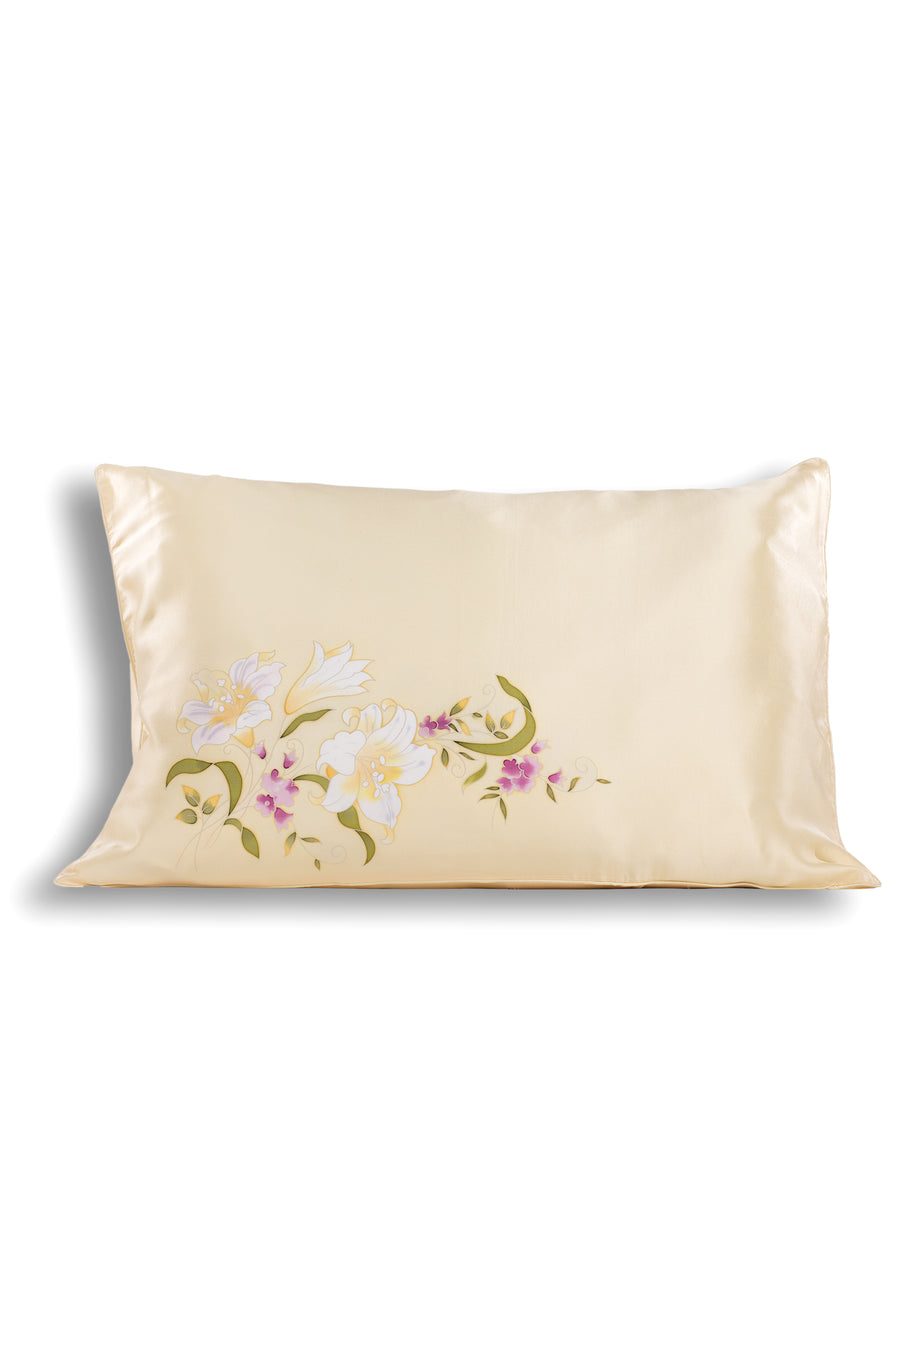 Hand Painted Silk Pillowcases - testing23451234 - Pillowcases